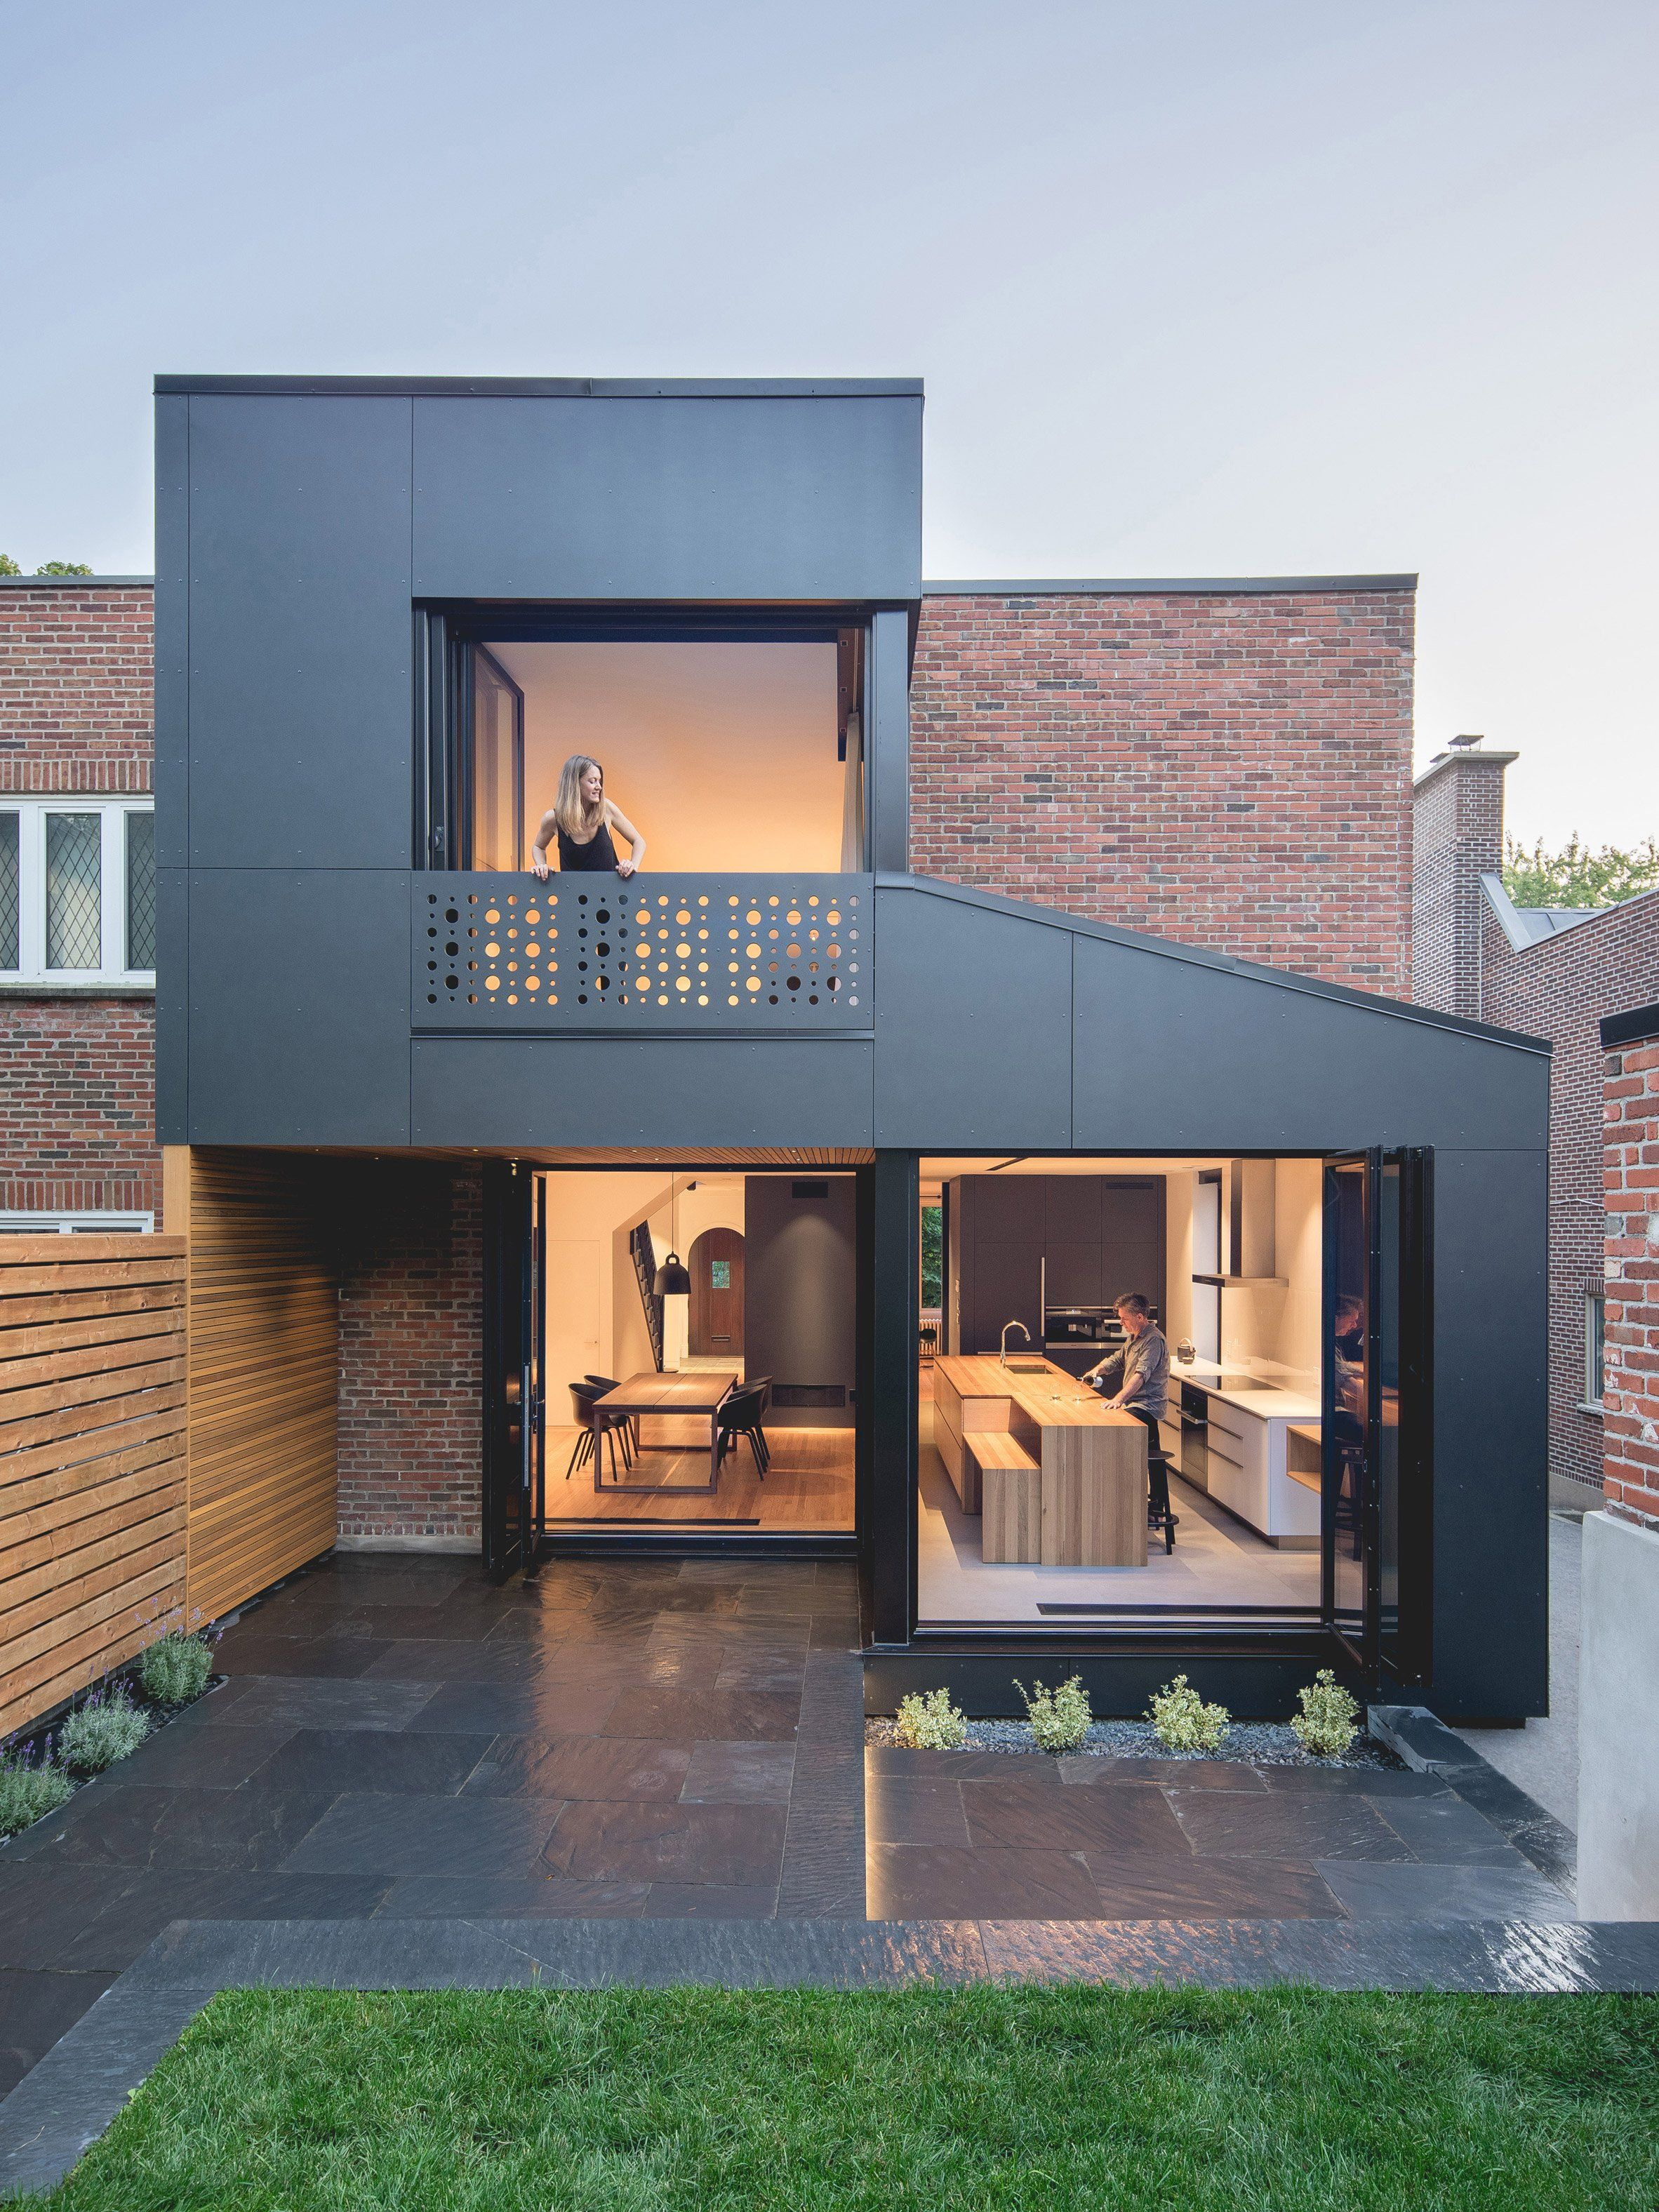 Pin by 361 Architecture on Exteriors | Pinterest | Black box ...